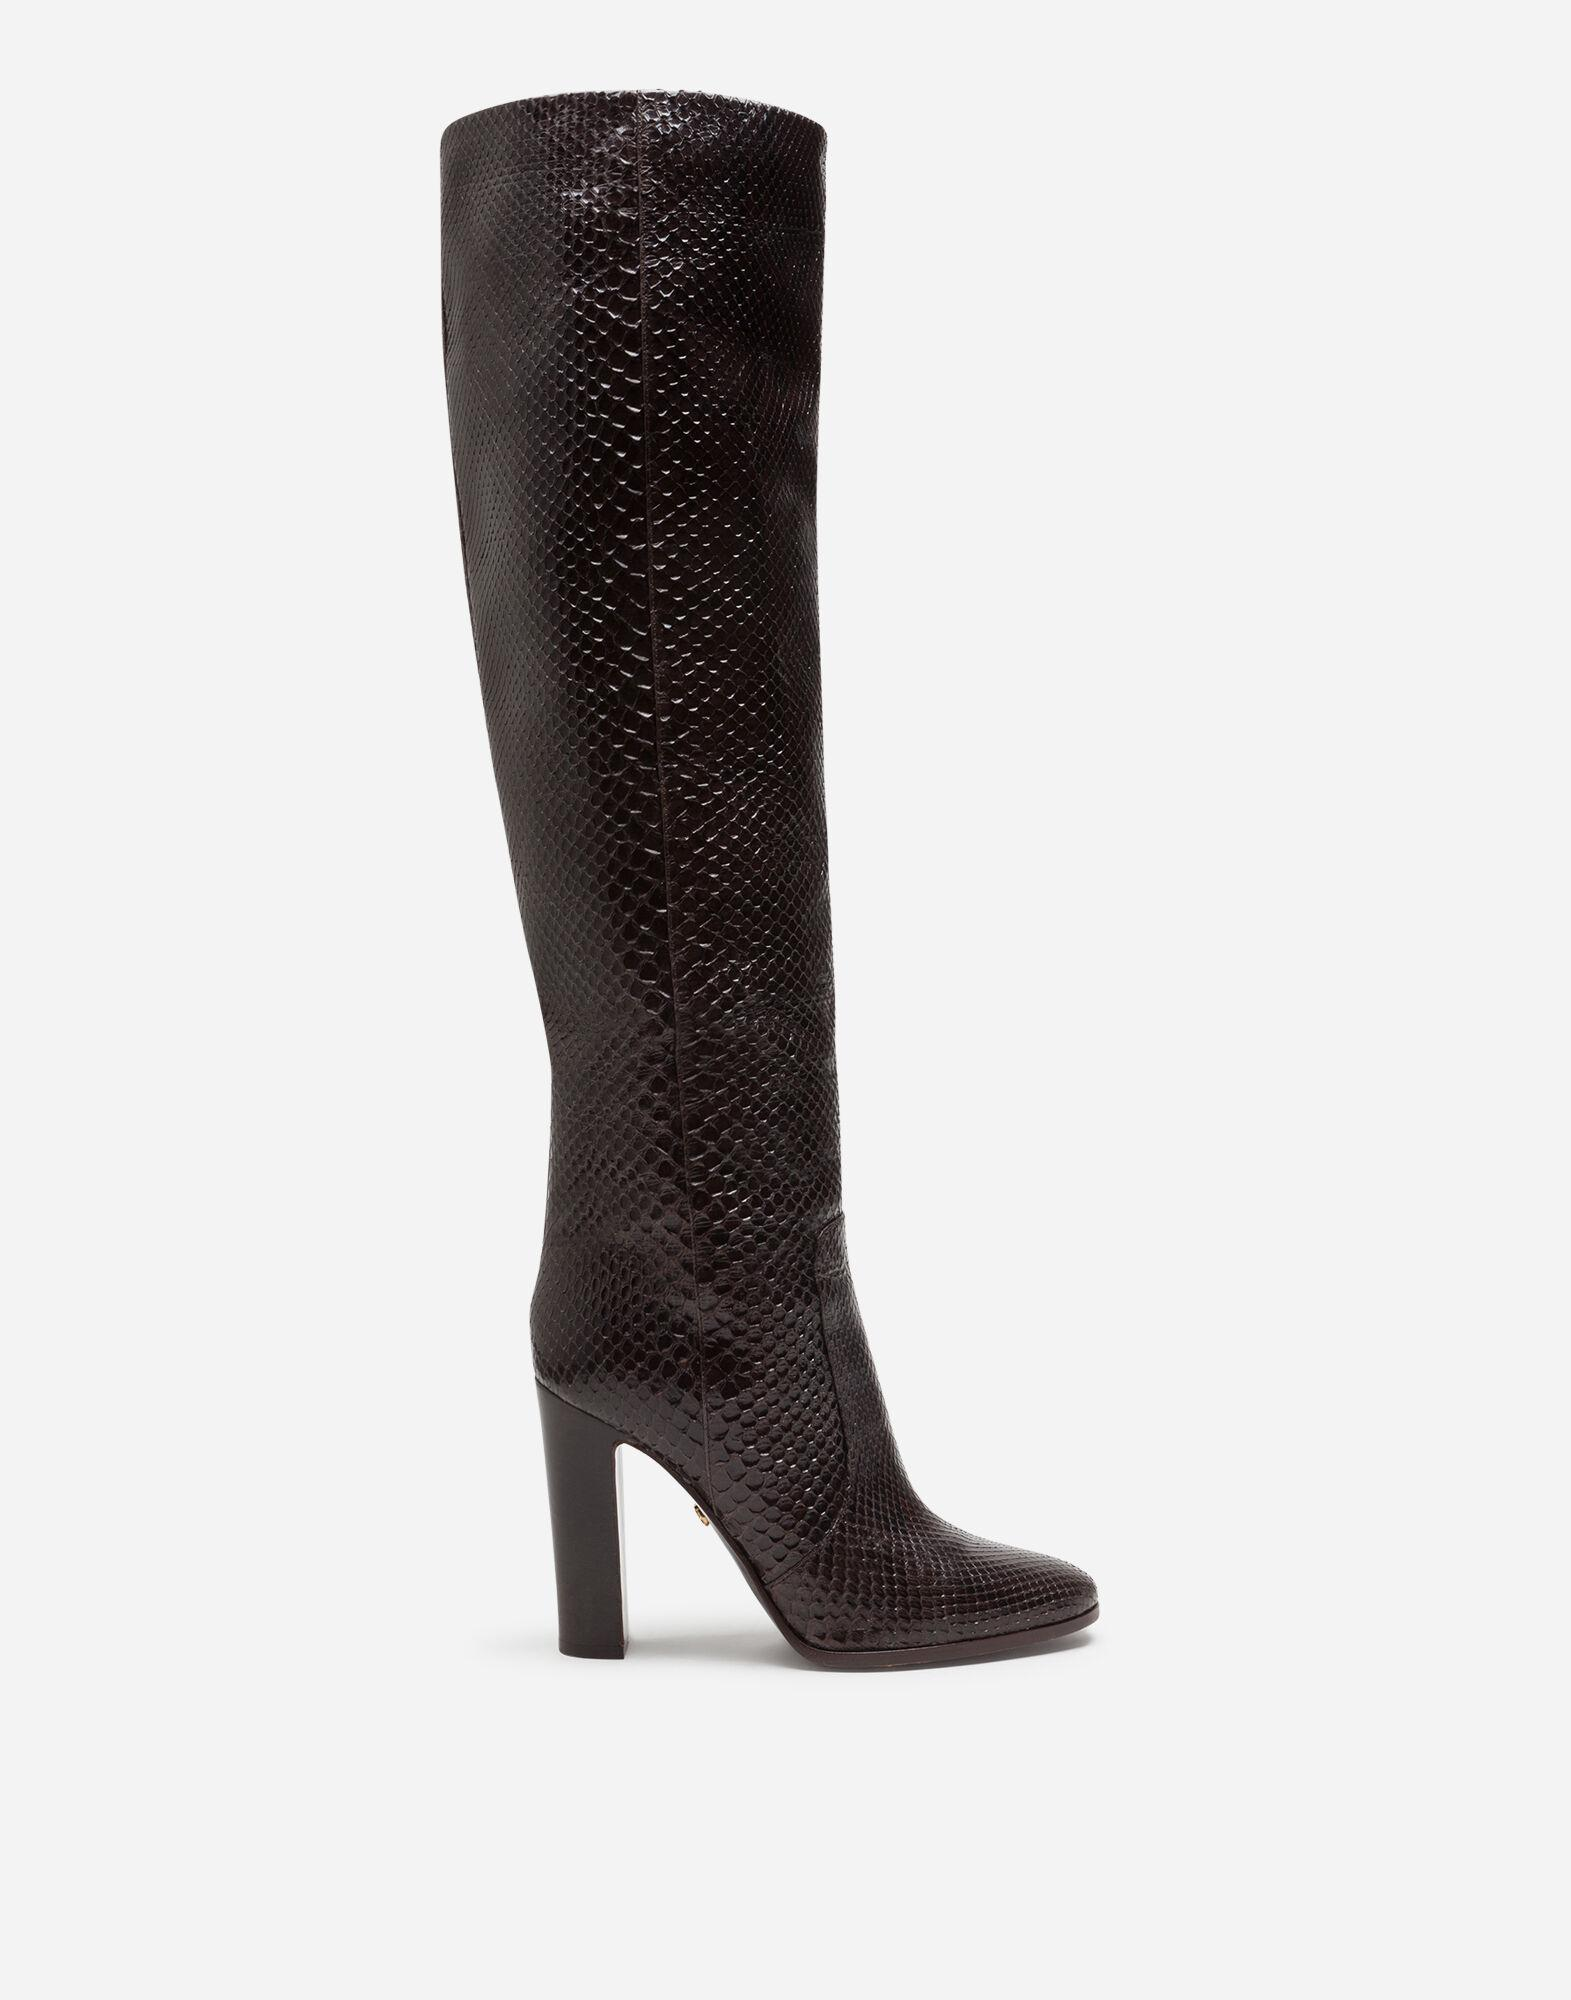 Boots in python